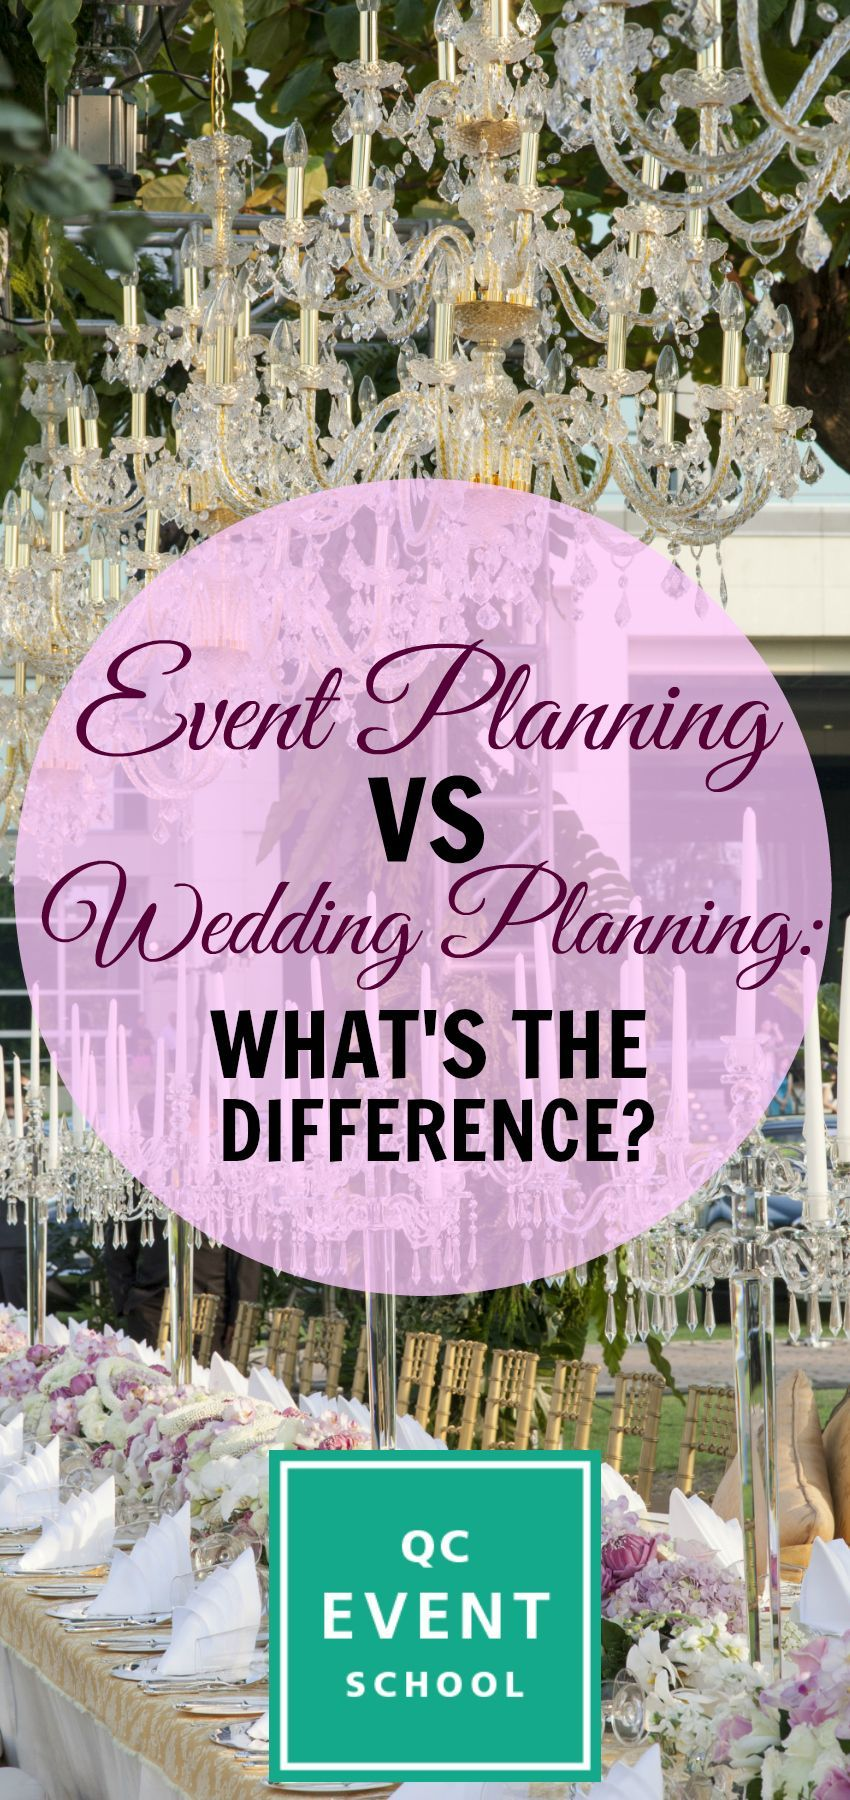 Wedding Planner Jobs.What Do Event Planners Do Differently Than Wedding Planners